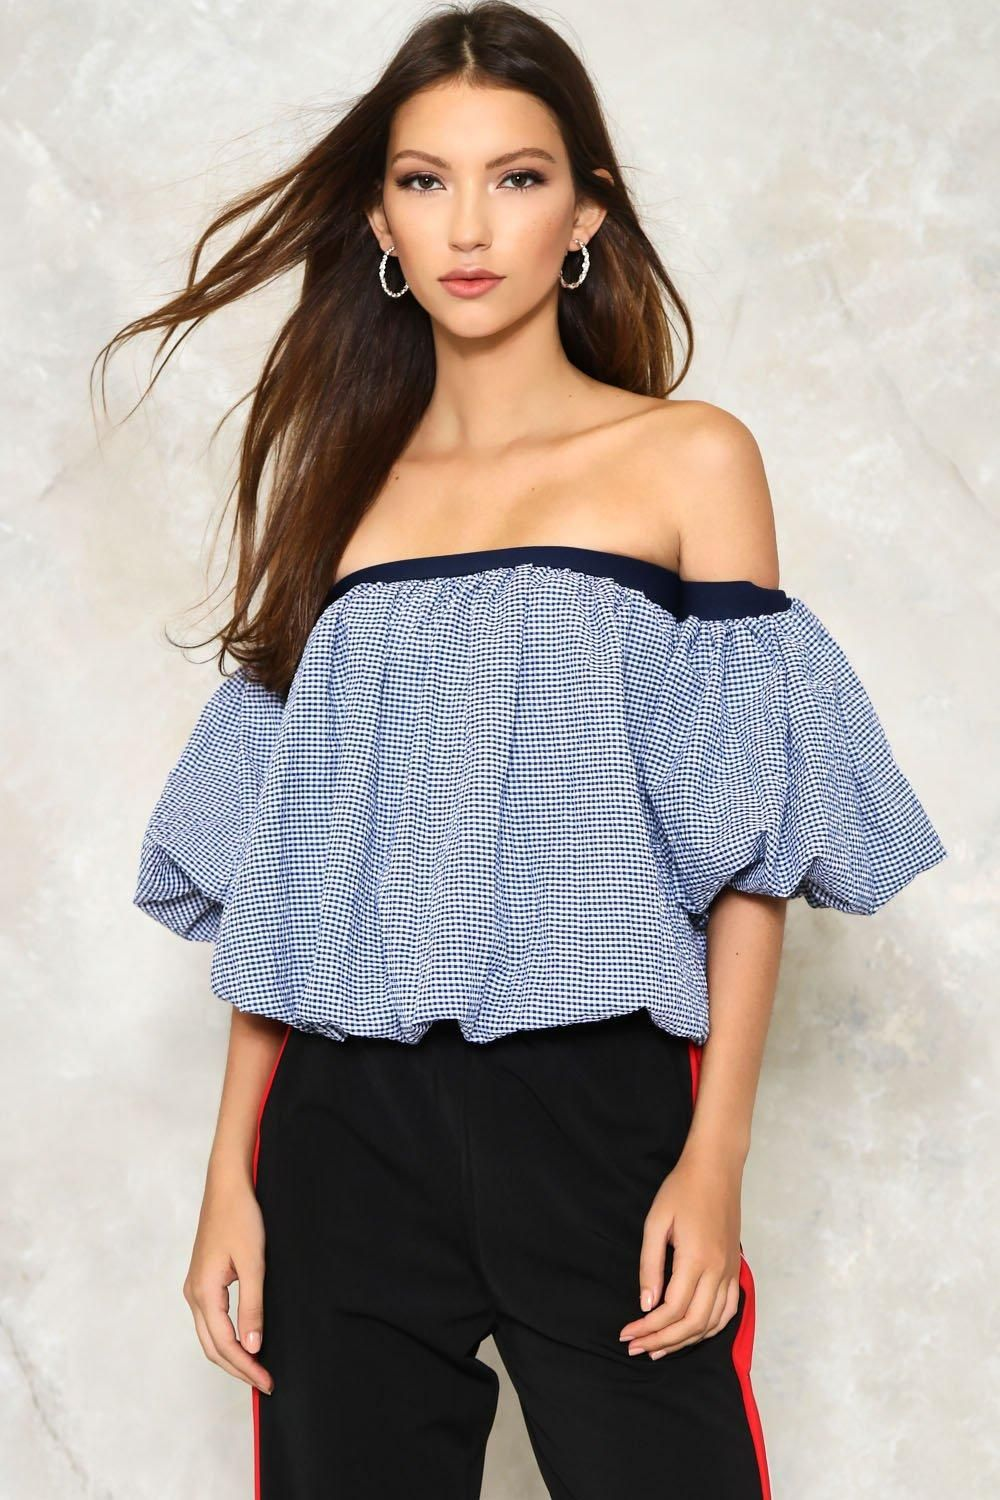 10b9fcfc45c12 The Huff and Puff Top features a gingham design